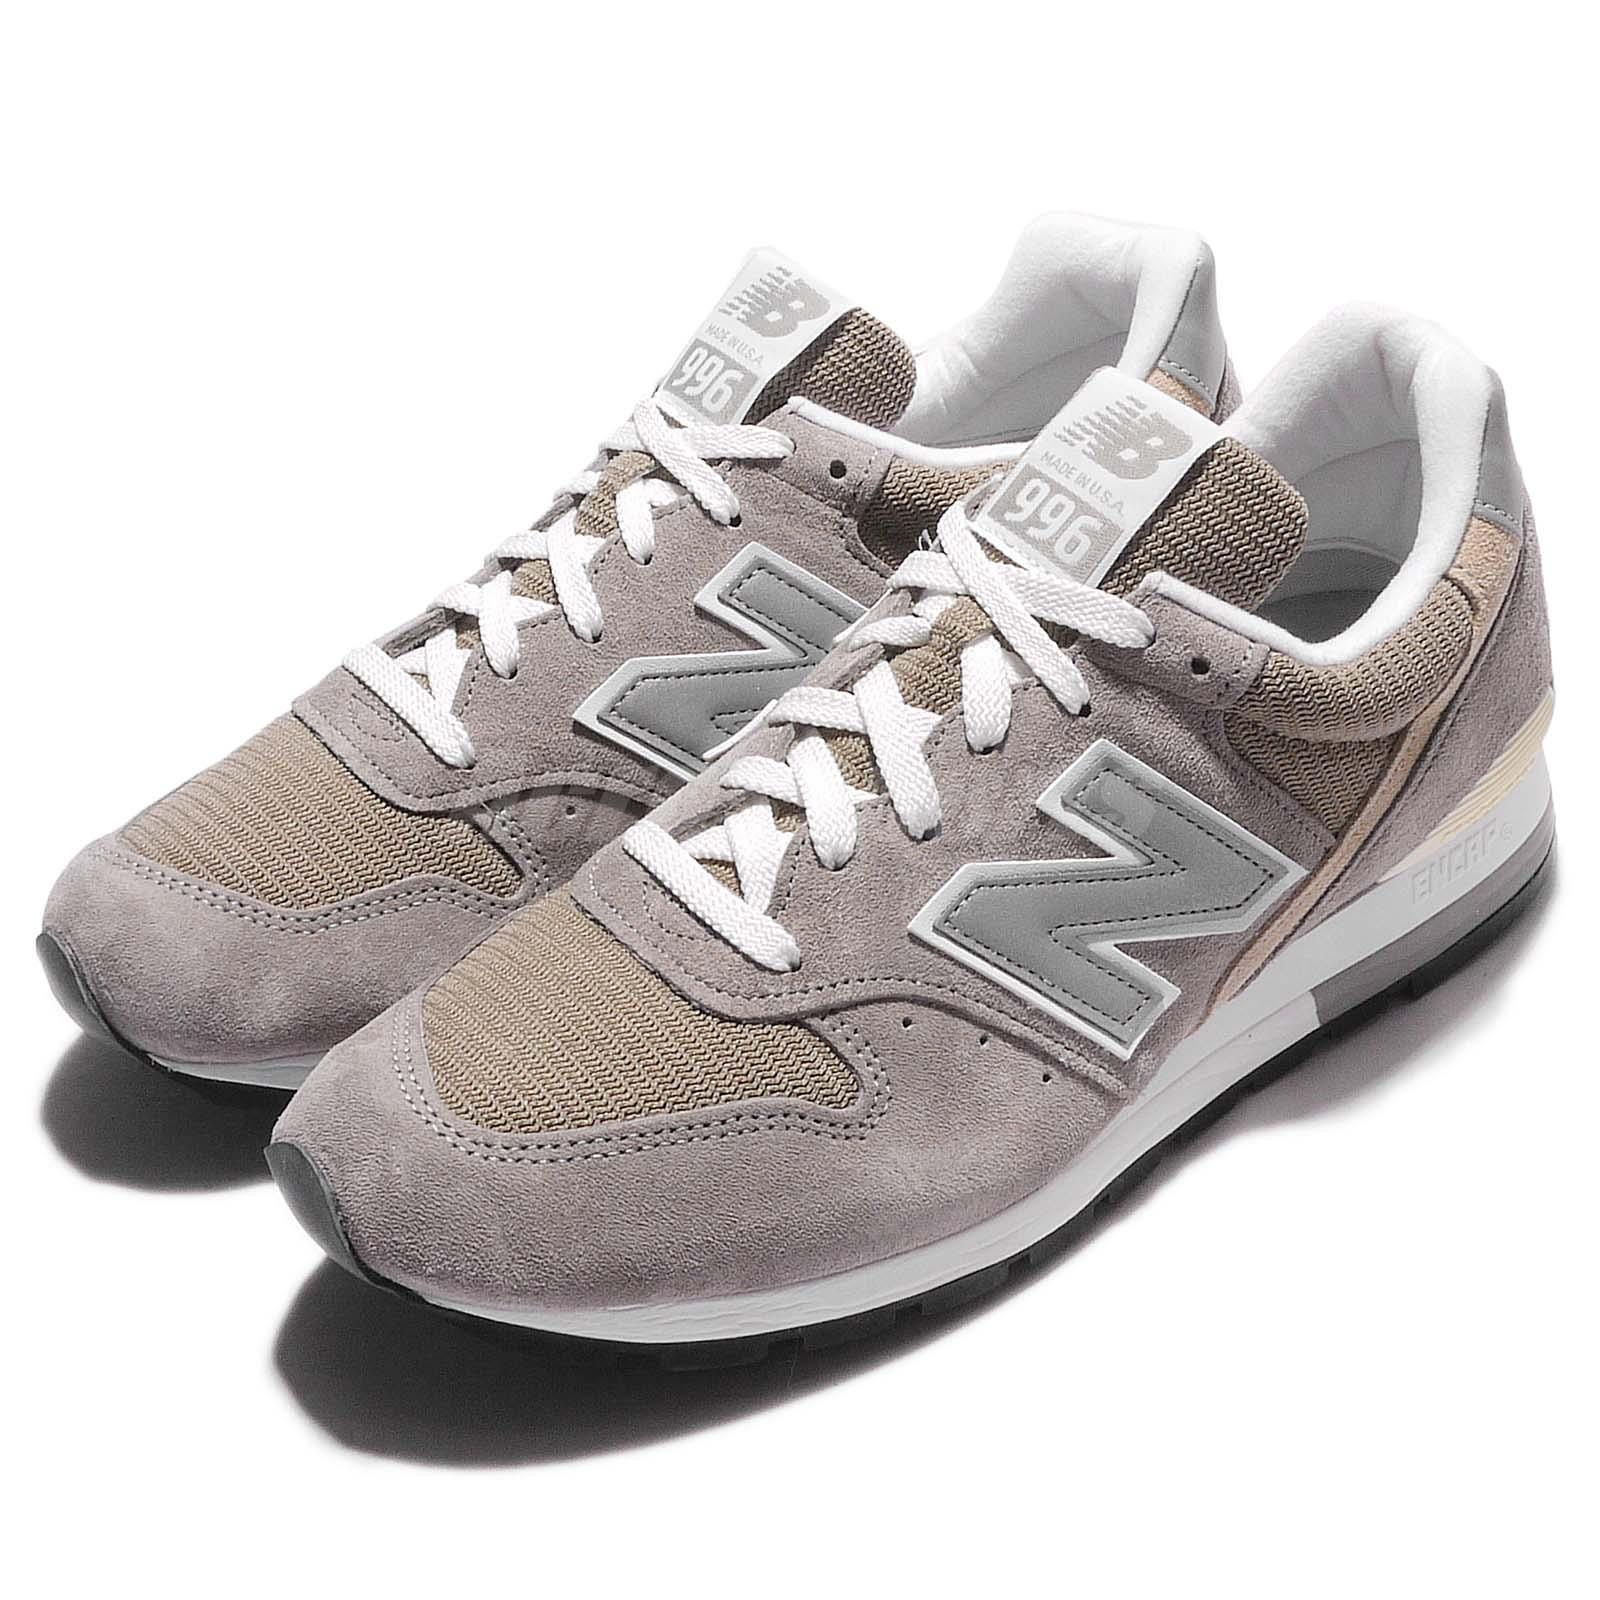 New Balance M996 D Grey White Suede Made In USA Mens Vintage Retro Shoes M996D